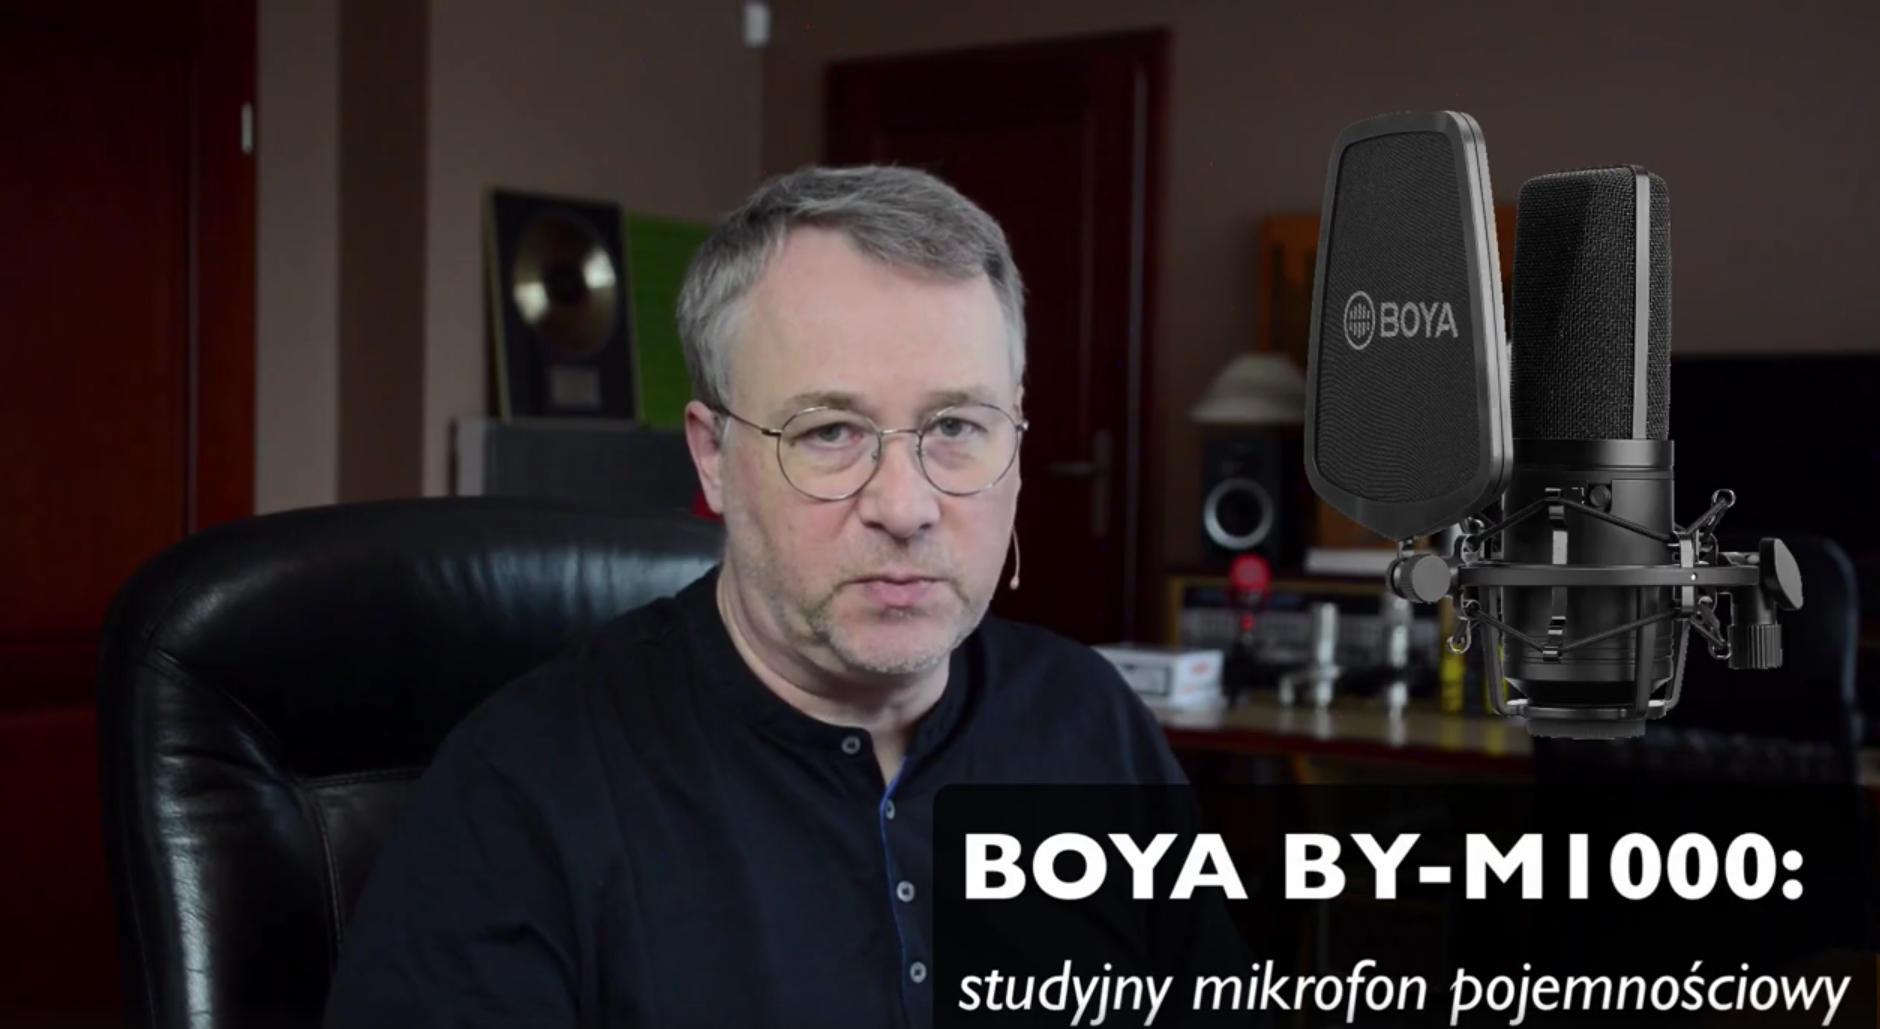 BOYA BY-M1000- test VIDEO